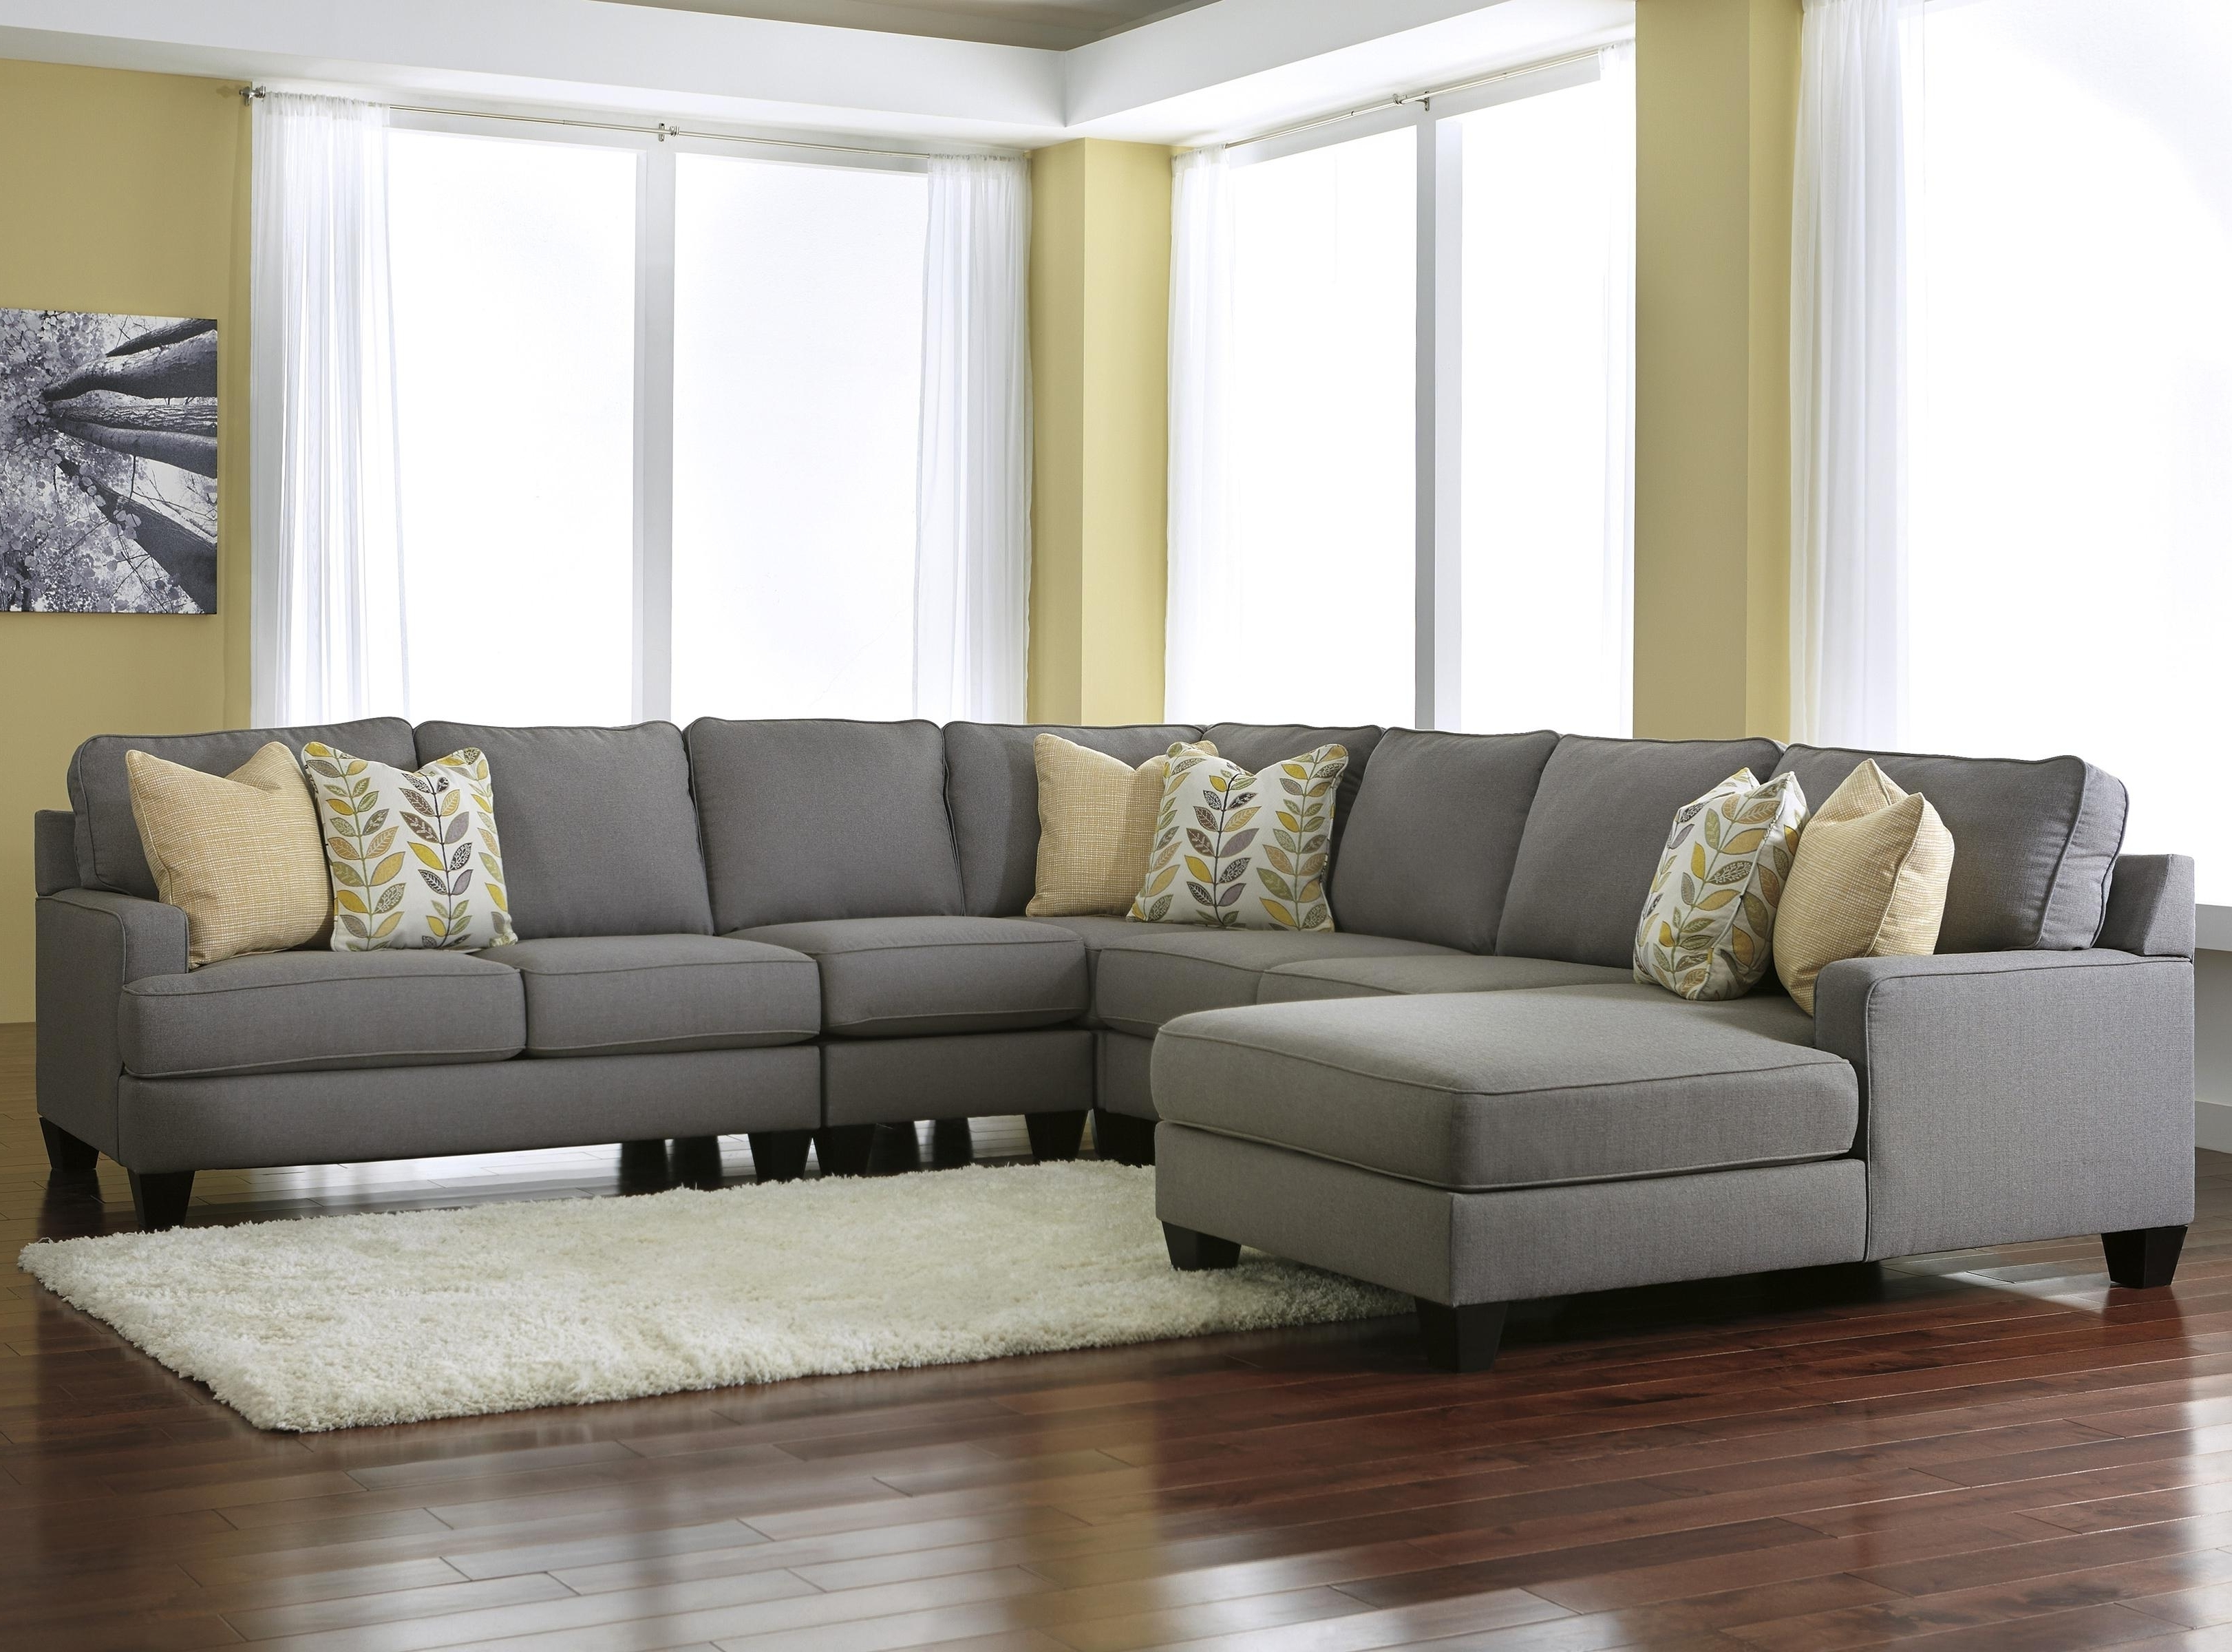 Featured Image of Duluth Mn Sectional Sofas